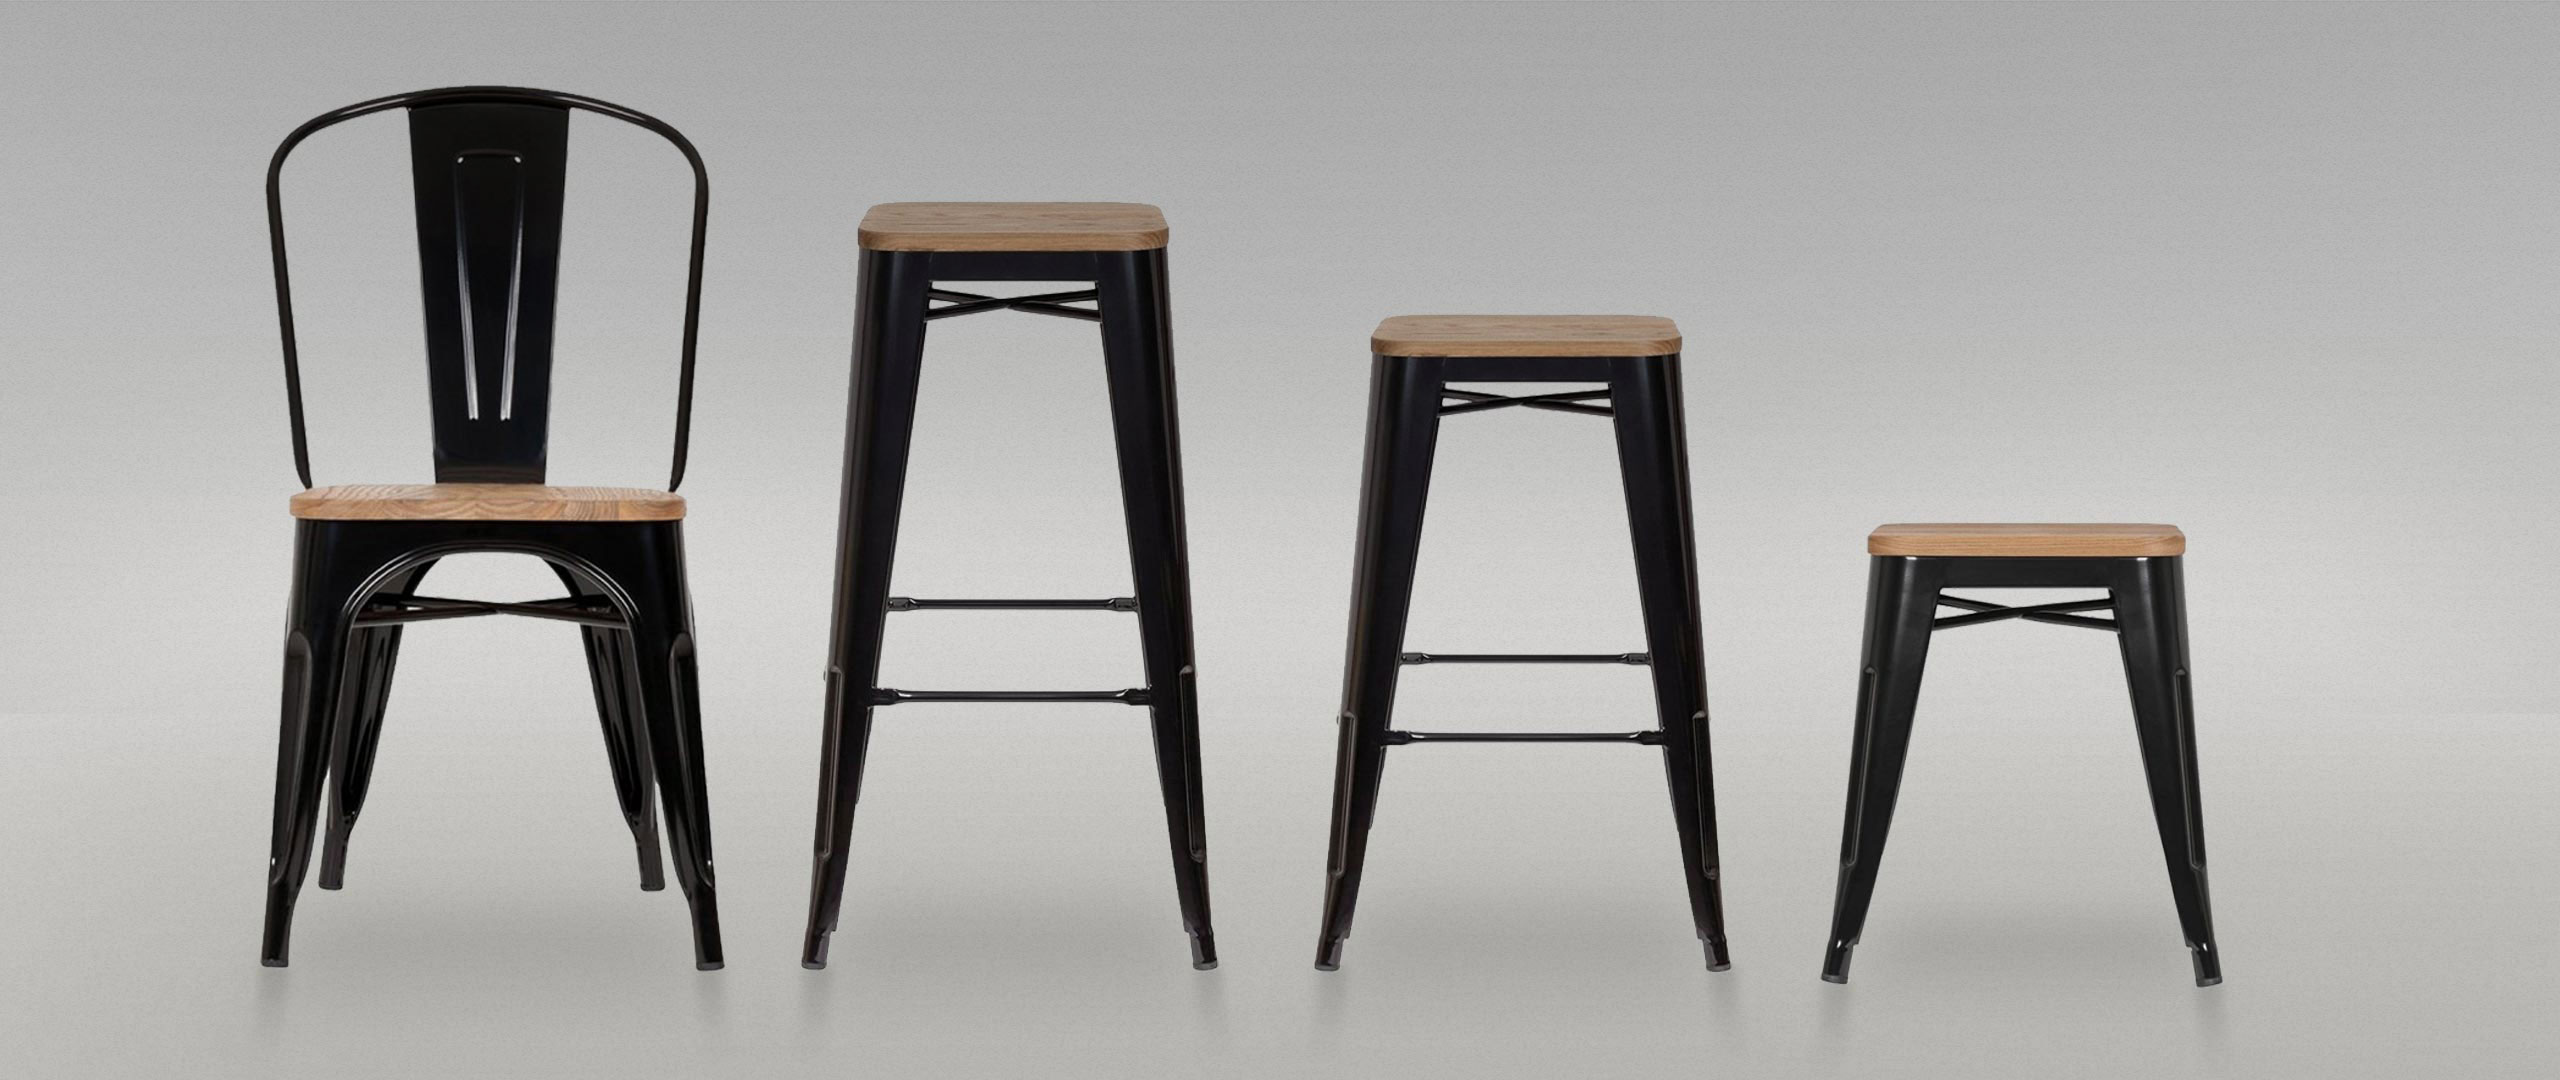 Tolix Chairs & Stools